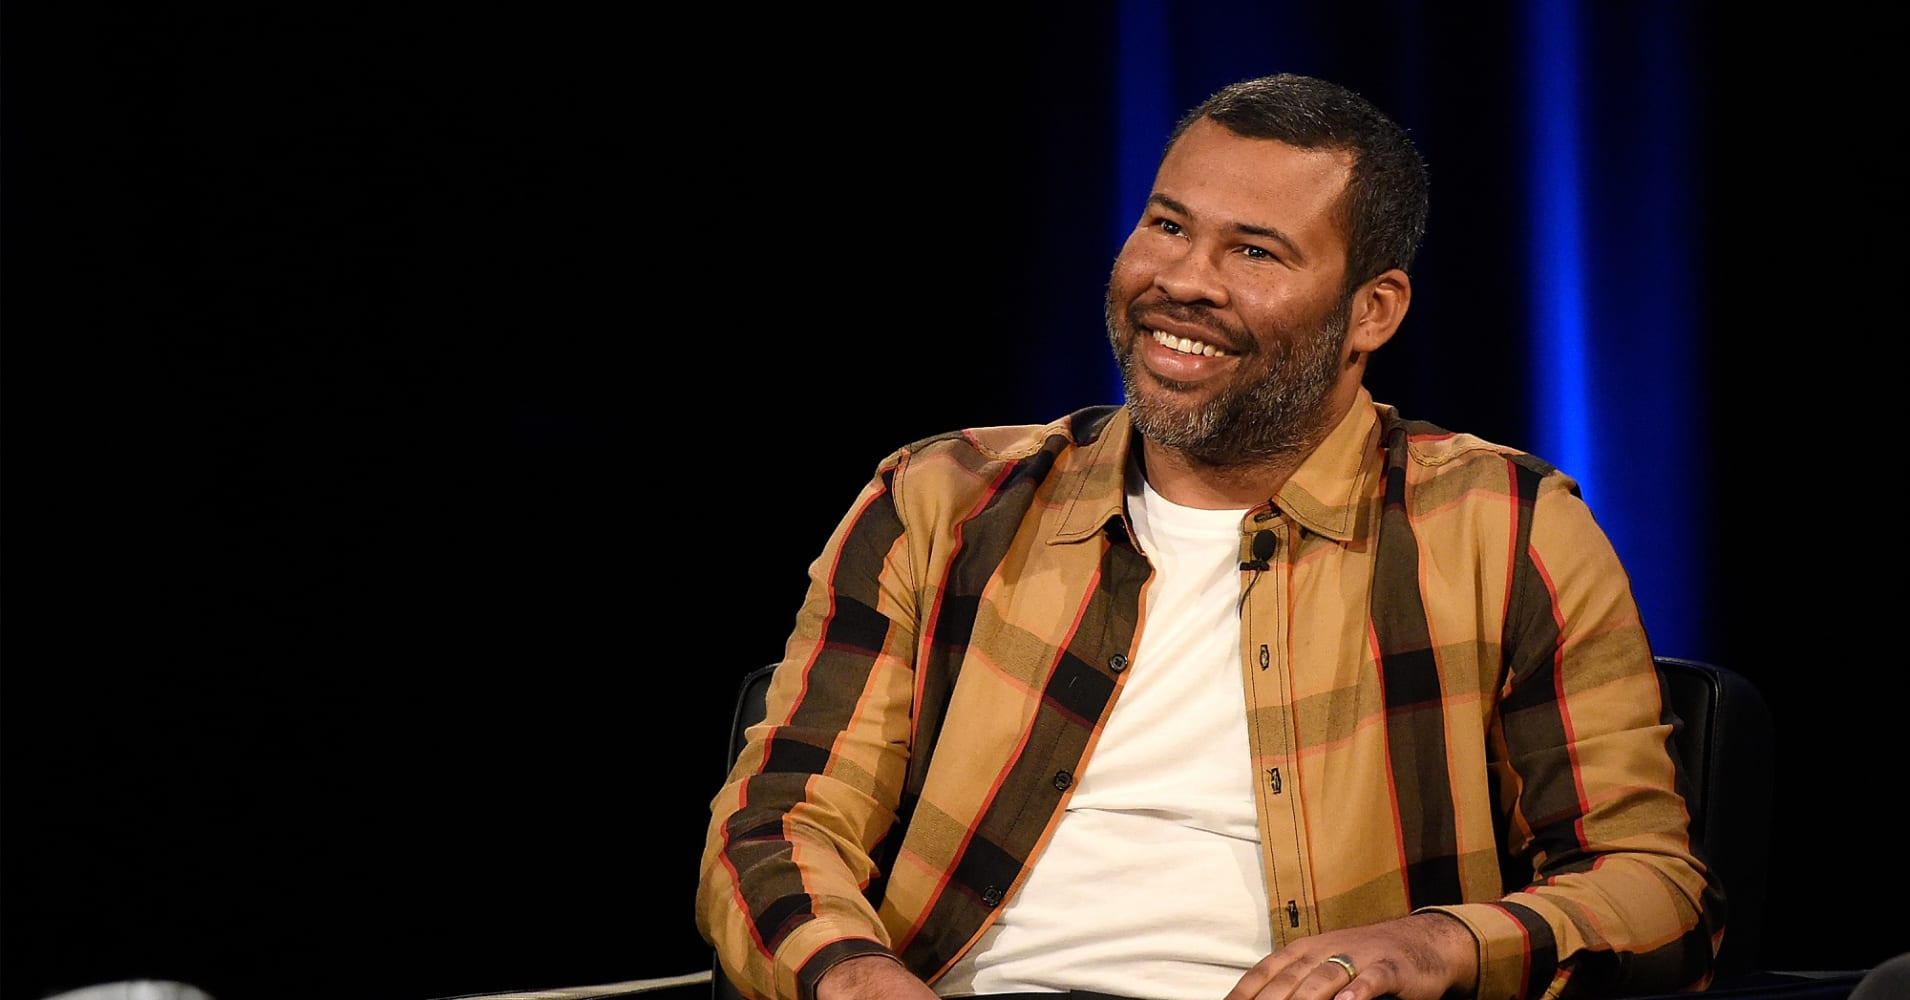 Jordan Peele becomes first black screenwriter to win Best Original Screenplay Oscar